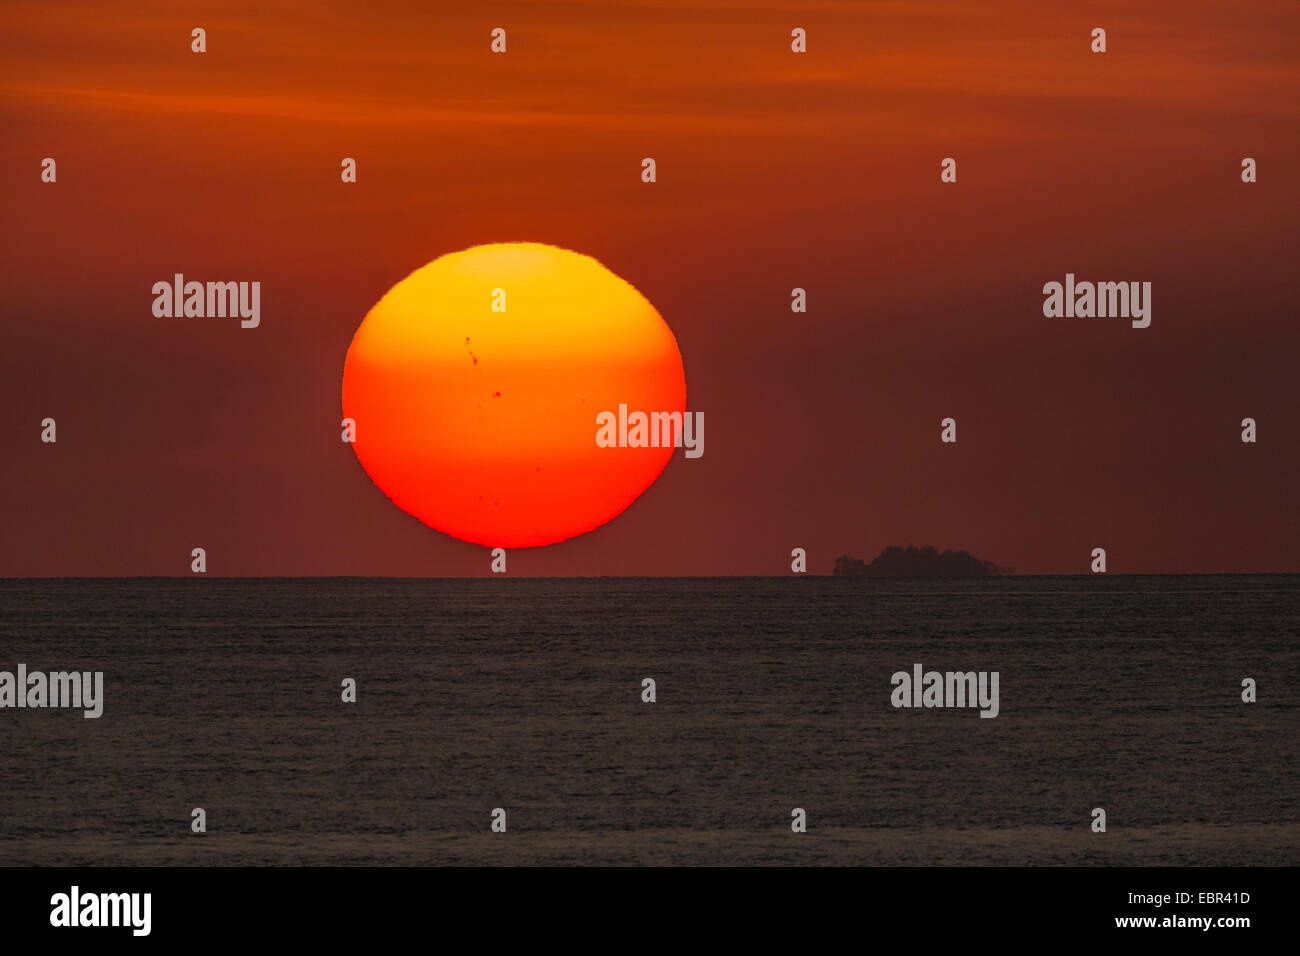 sun with sunspots setting over the Pacific Ocean, Costa Rica, Pazifikkueste - Stock Image